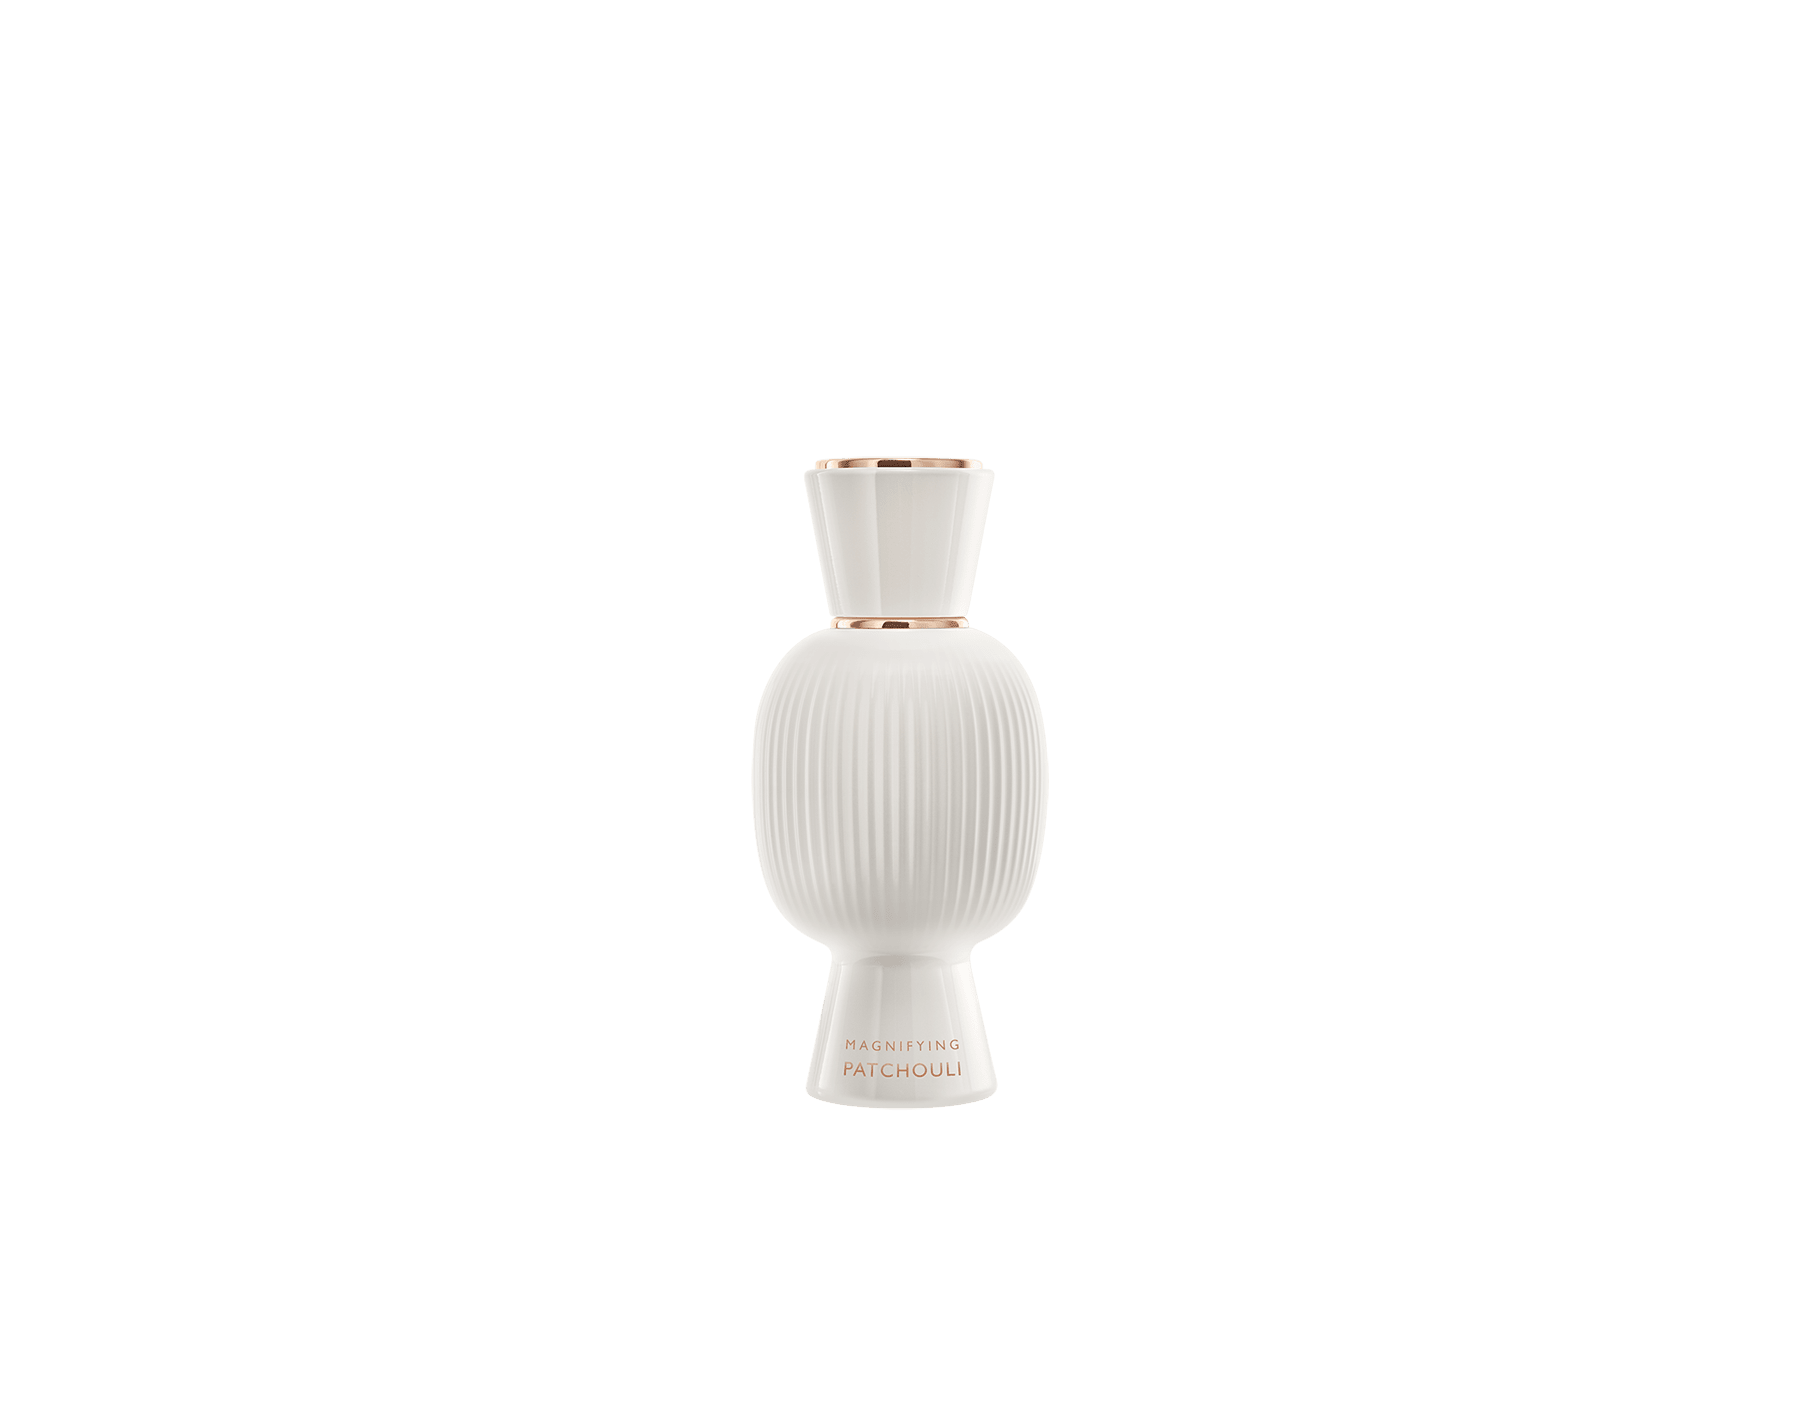 An exclusive perfume set, as bold and unique as you. The liquorous floriental Rock'n'Rome Allegra Eau de Parfum blends with the stark sensuality of the Magnifying Patchouli Essence, creating an irresistible personalised women's perfume. Perfume-Set-Rock-n-Rome-and-Patchouli-Magnifying image 3